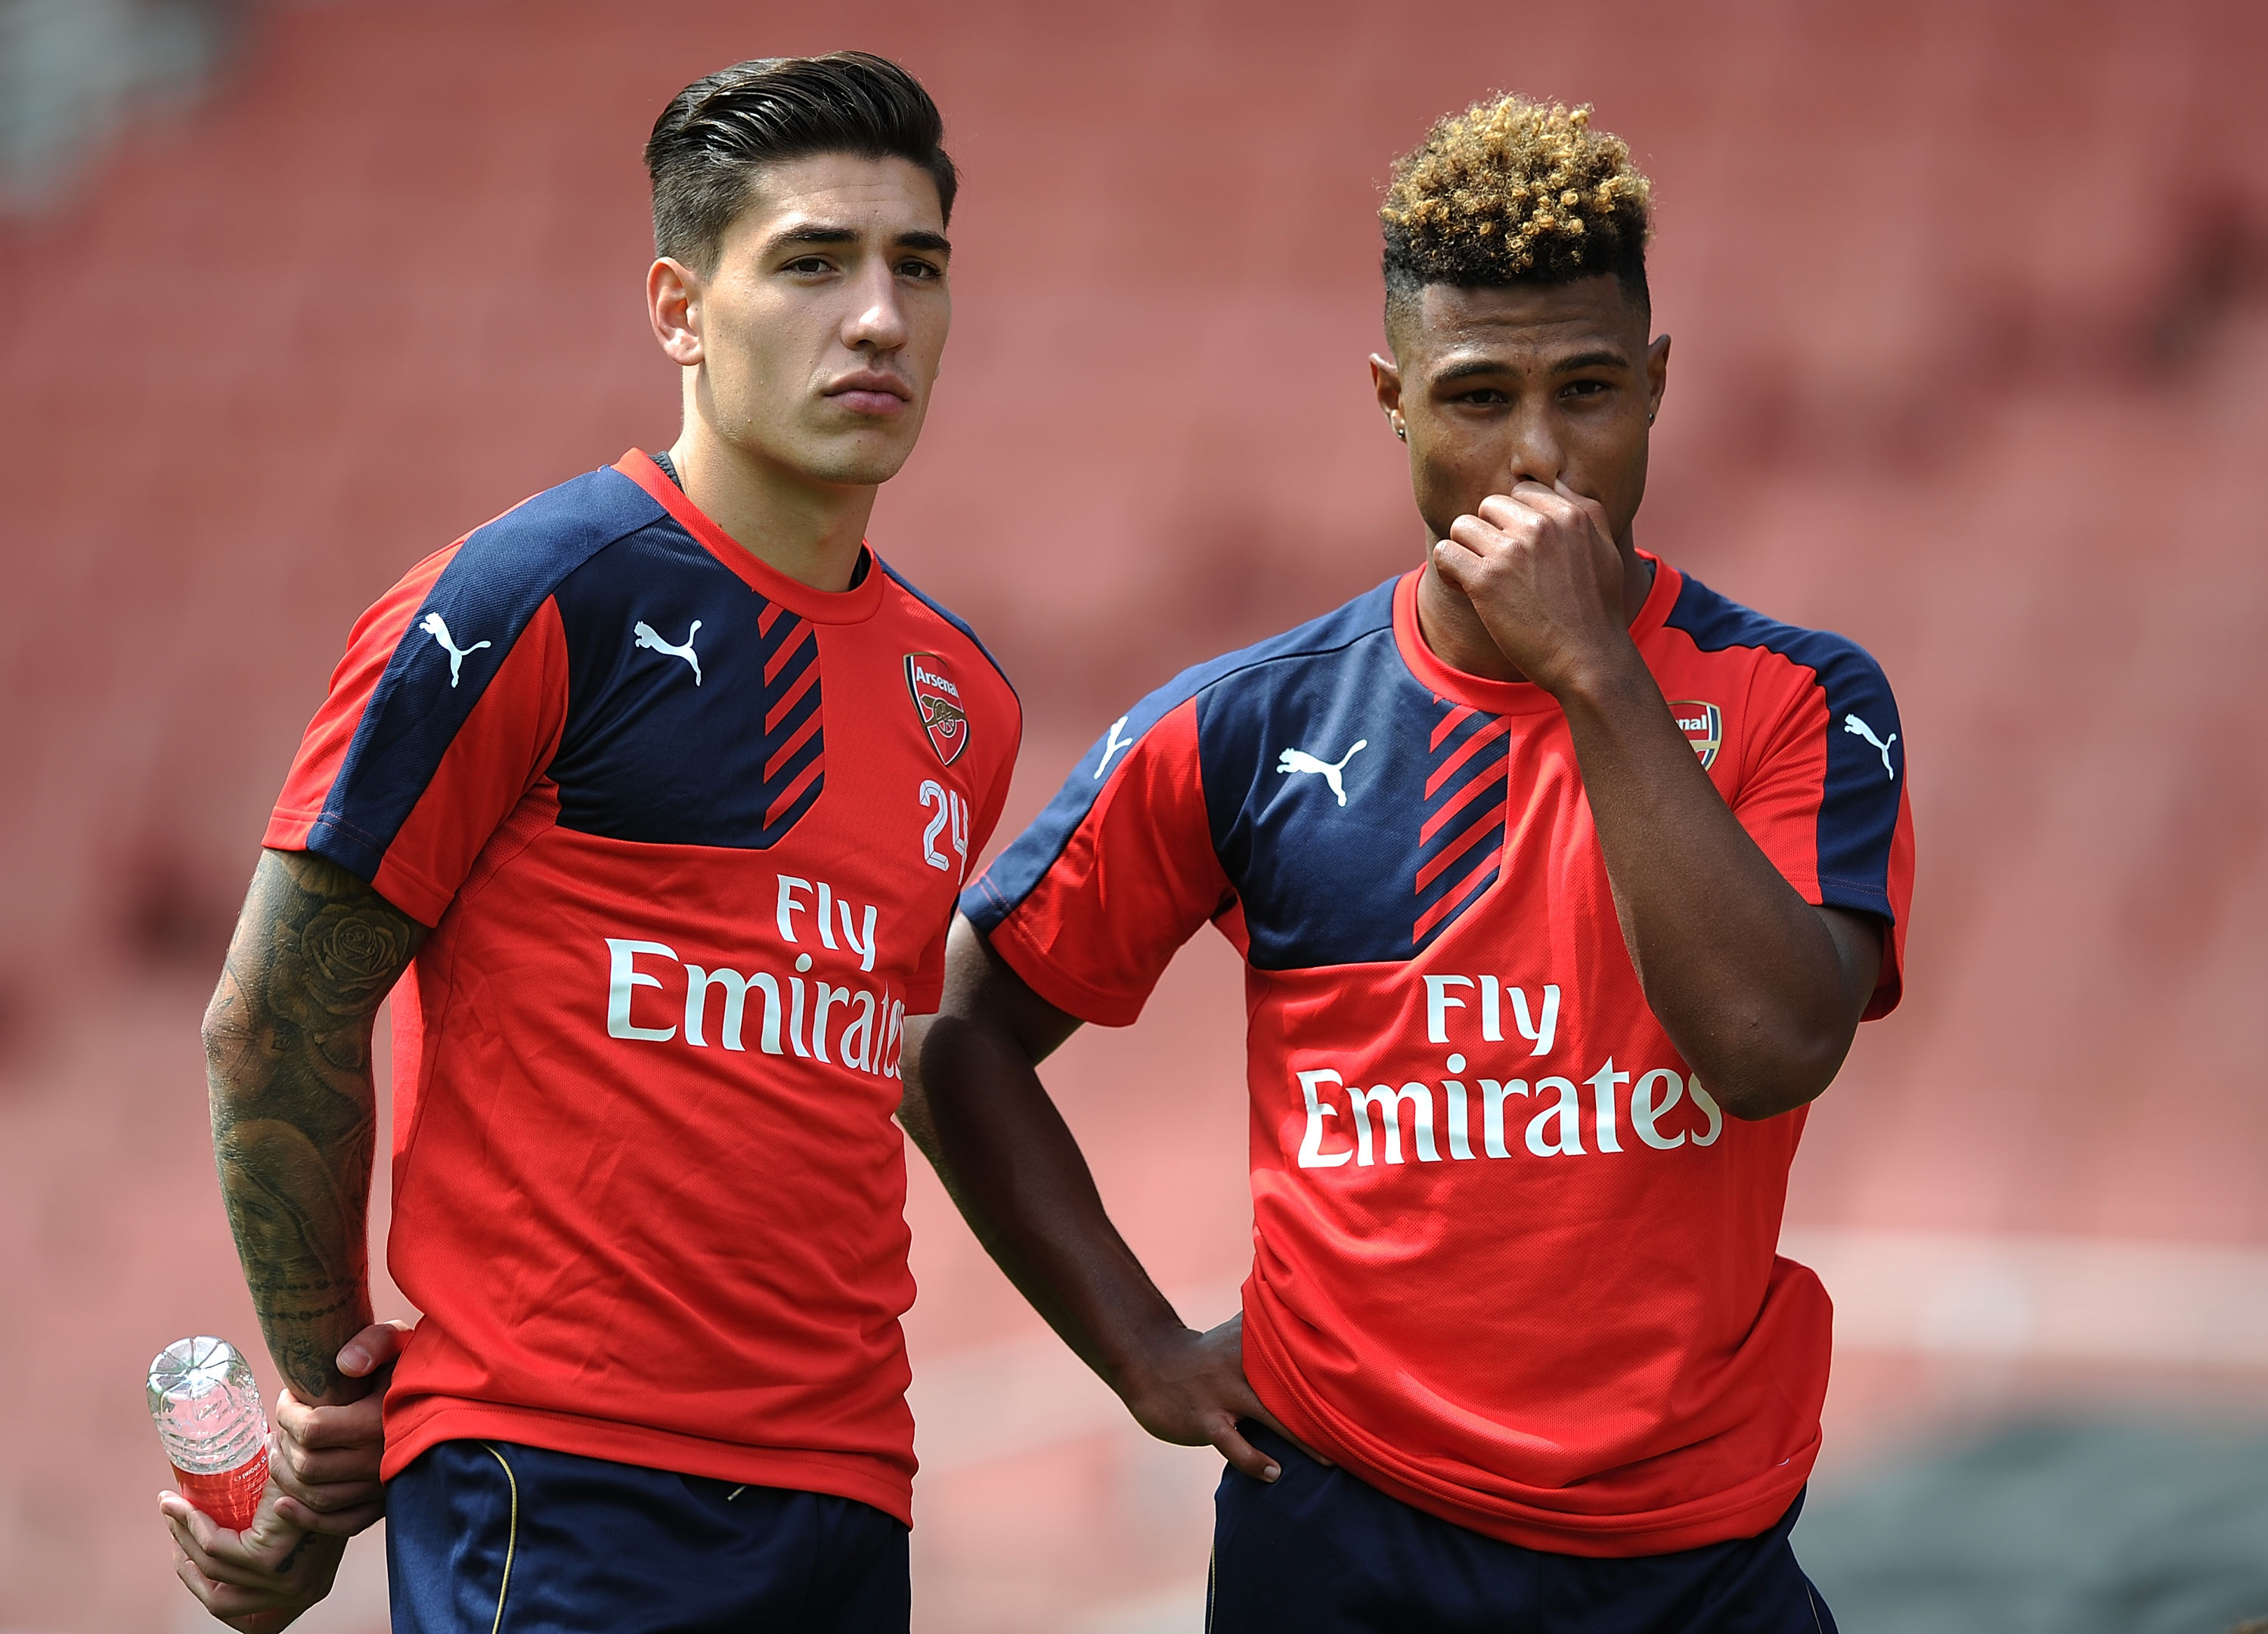 Arsenal star Hector Bellerin congratulates 'brother' Serge Gnabry following historic Germany hat-trick